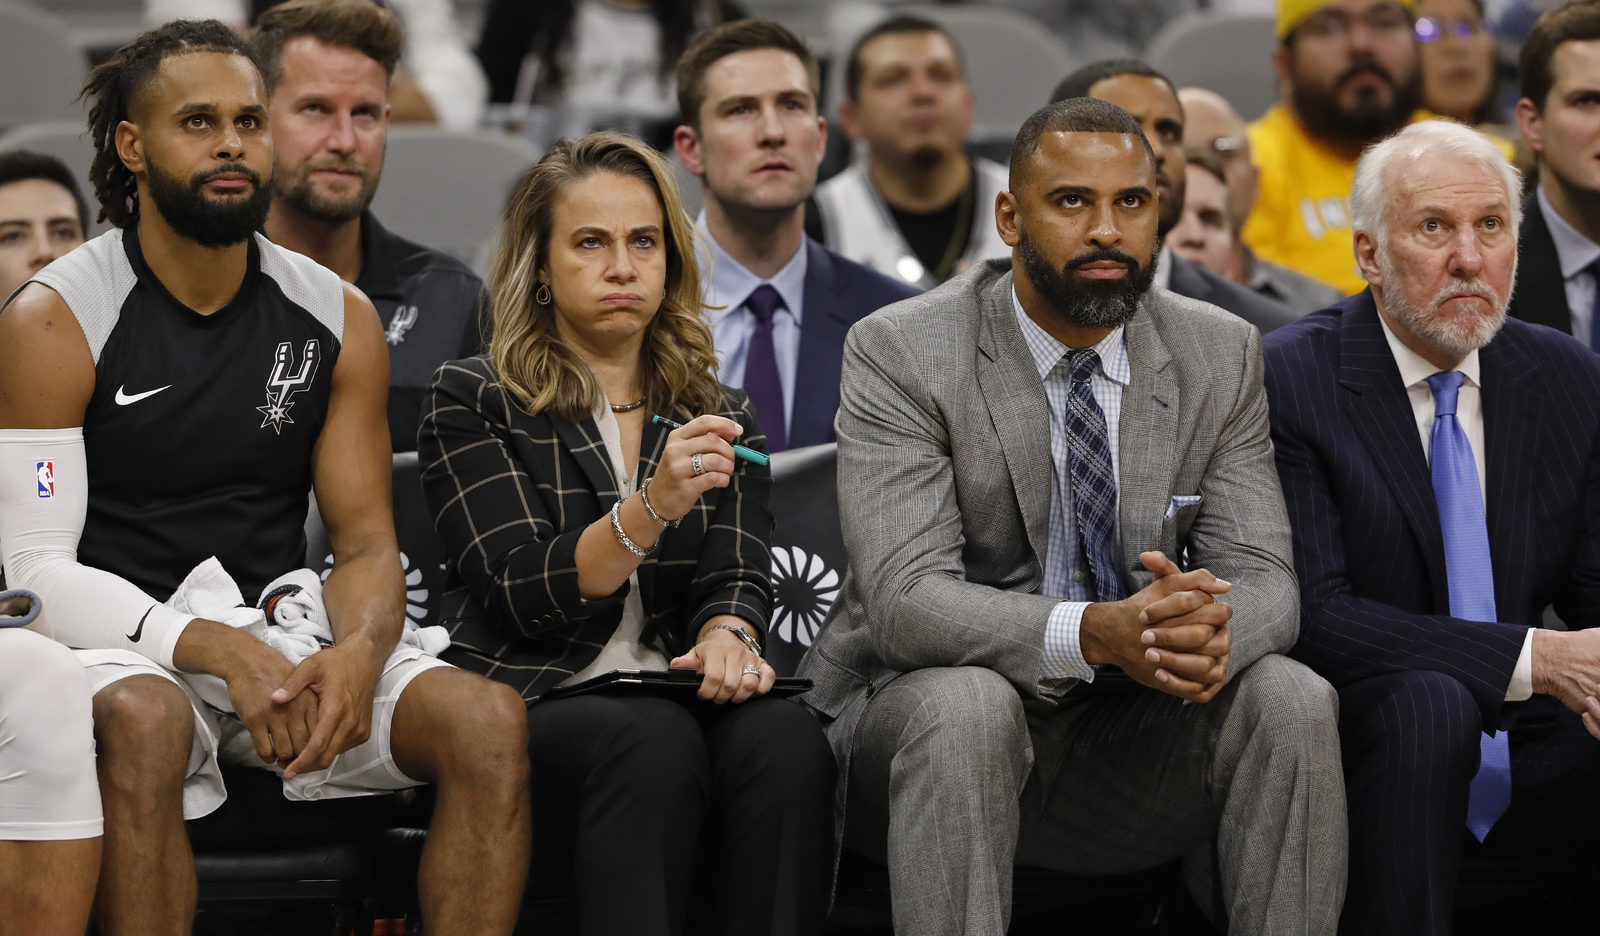 Patty Mills #8 of the San Antonio Spurs, assistant coaches Becky Hammon, Ime Udoka, and head coach Gregg Popovich watch action against the Indiana Pacers from the bench during an NBA game on October 24, 2018 at the AT&T Center in San Antonio, Texas.